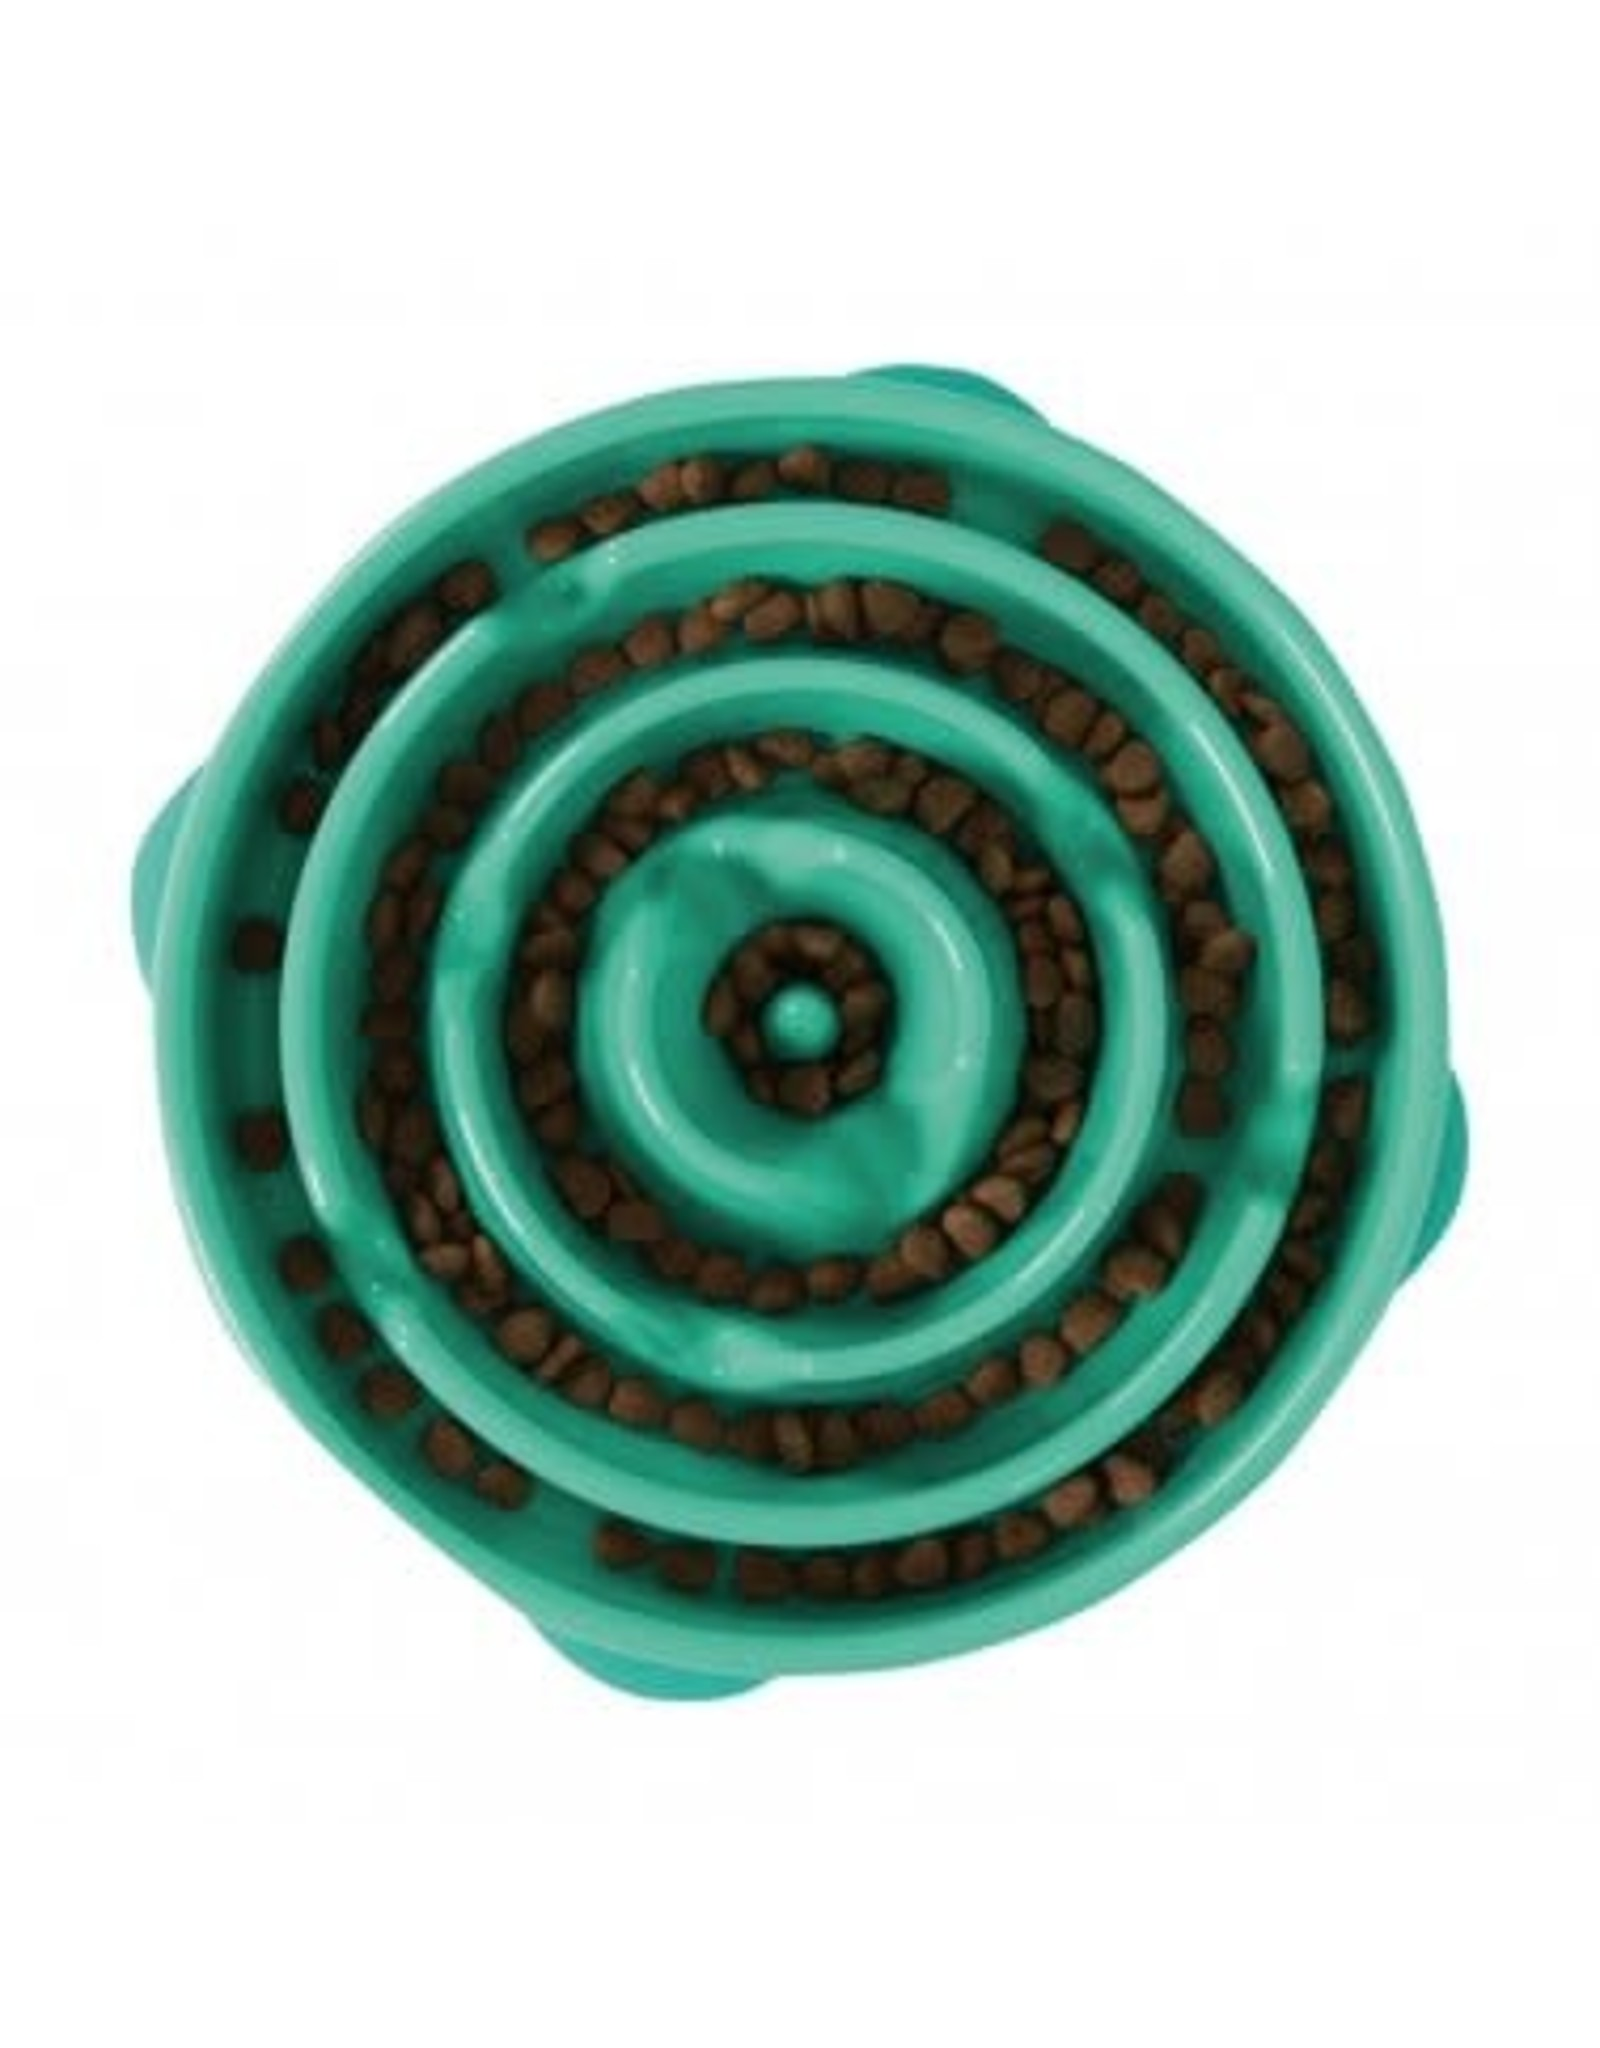 Outward Hound Outward Hound Fun Feeder Slo-Bowl for Dogs - Turquoise